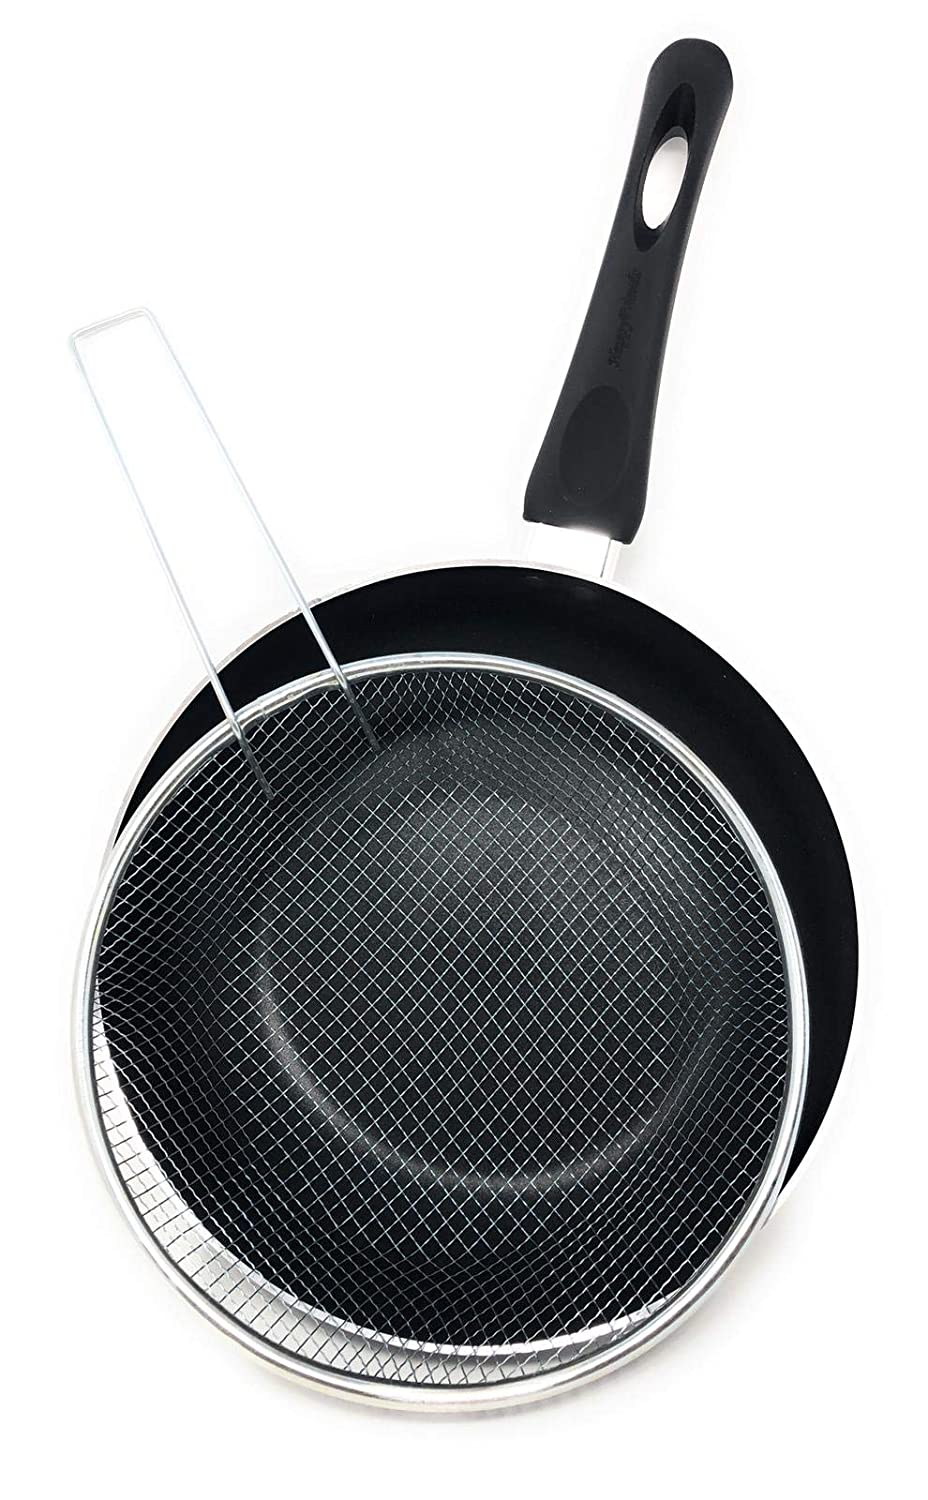 Happy Friends - Sartén Freidora con Cestillo - Inducción - Doble Recubrimiento Antiadherente Nonstick Plus - Ø 26 cm: Amazon.es: Hogar